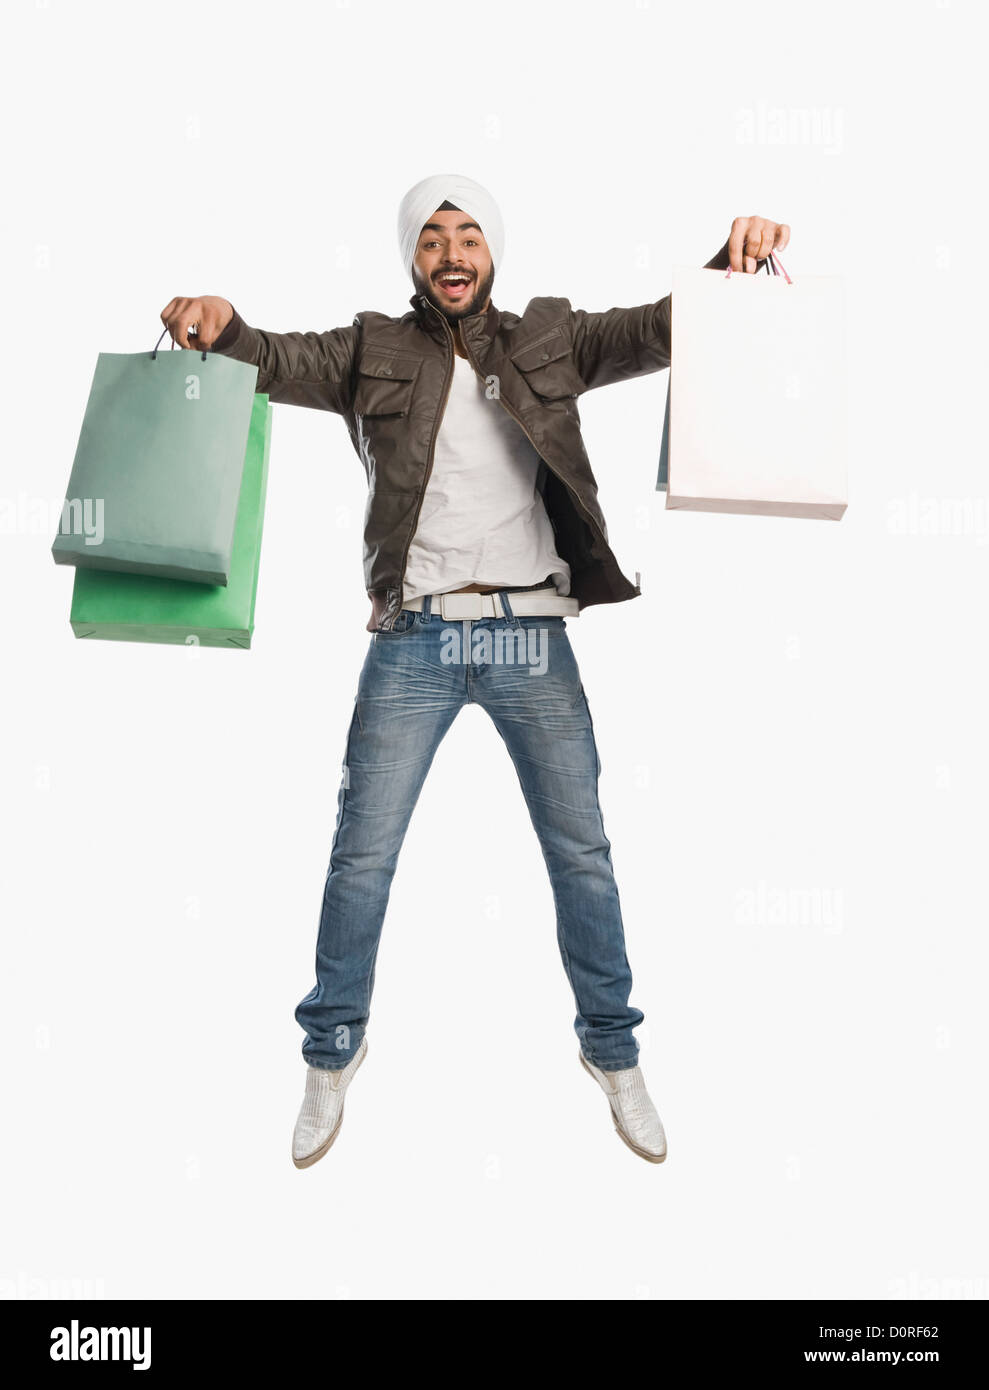 Man jumping with shopping bags - Stock Image